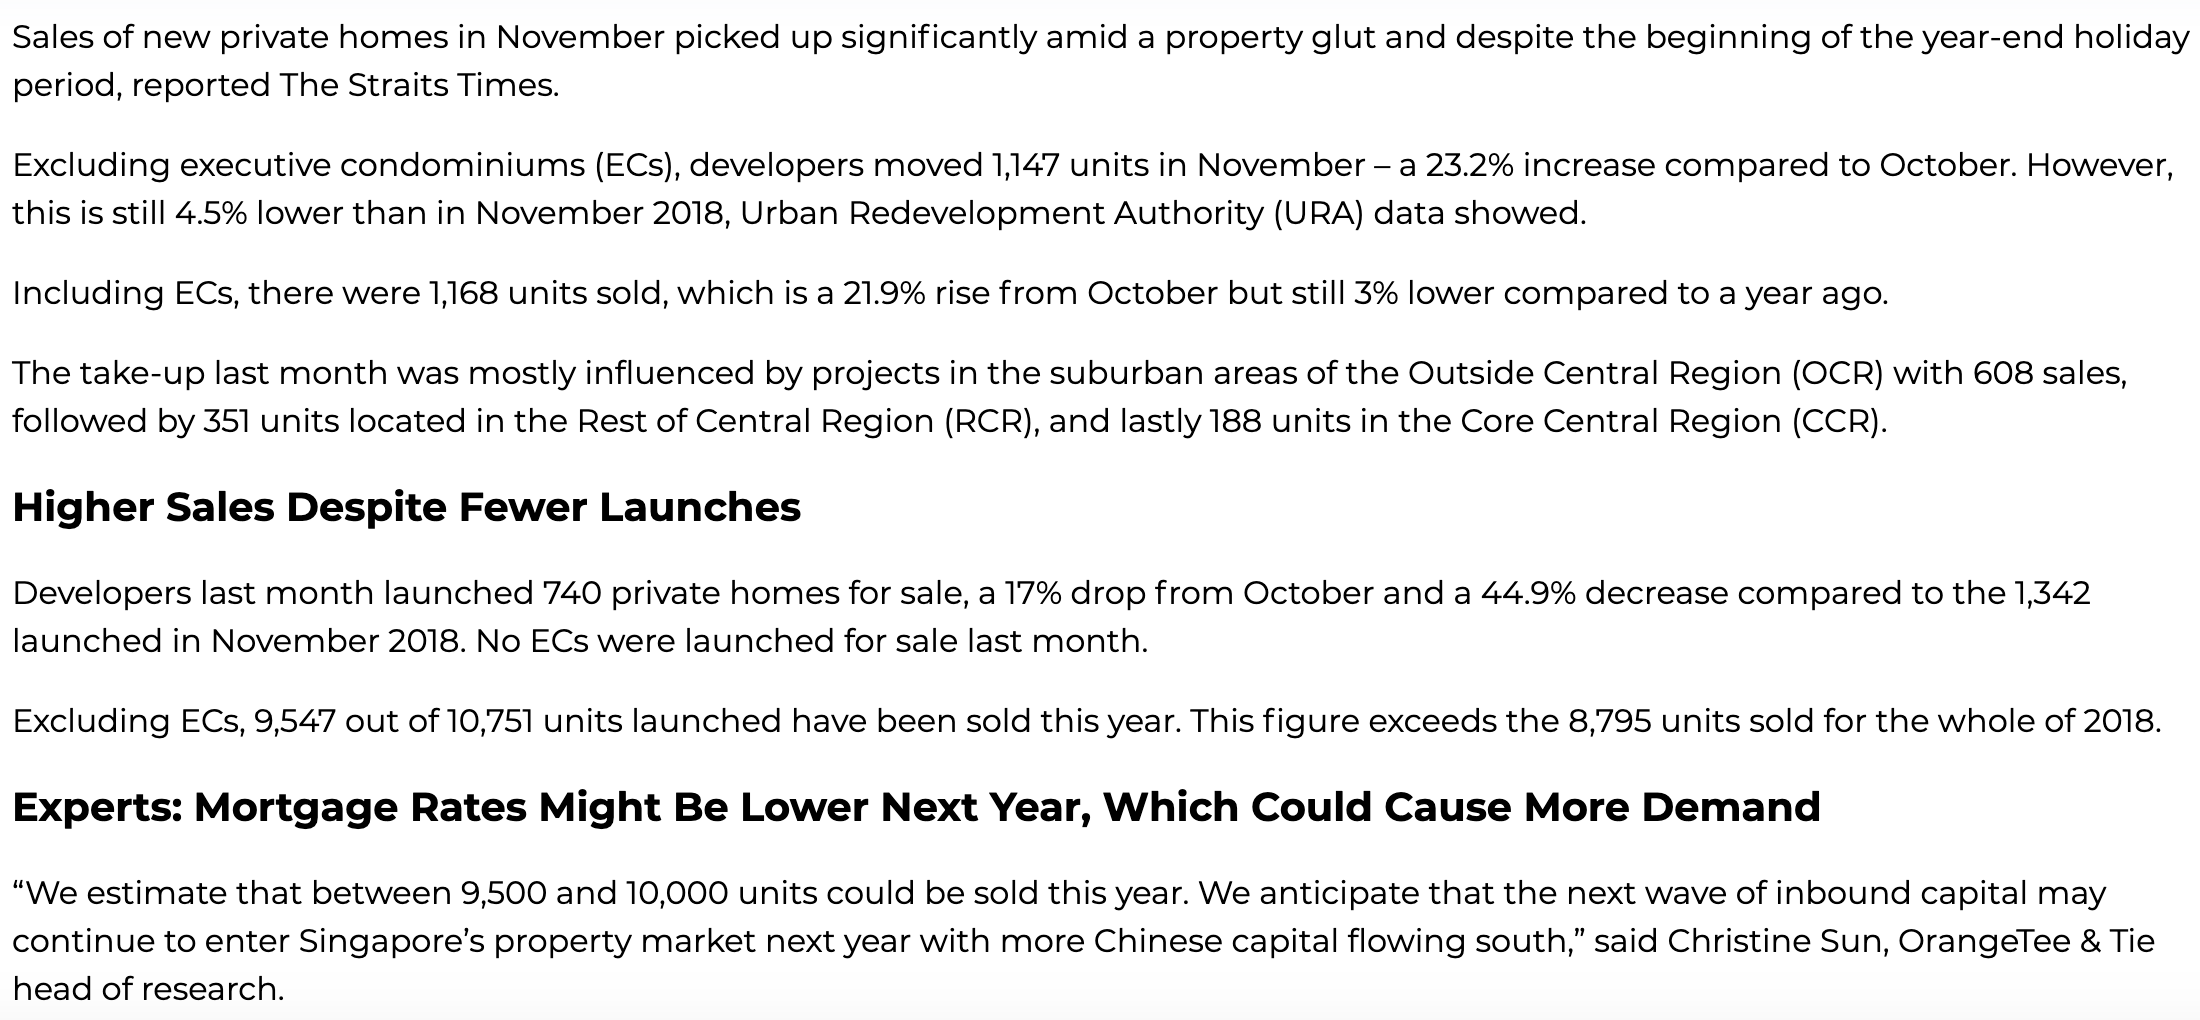 Higher Private Home Sales Recorded In November Despite Property Overhang page 1